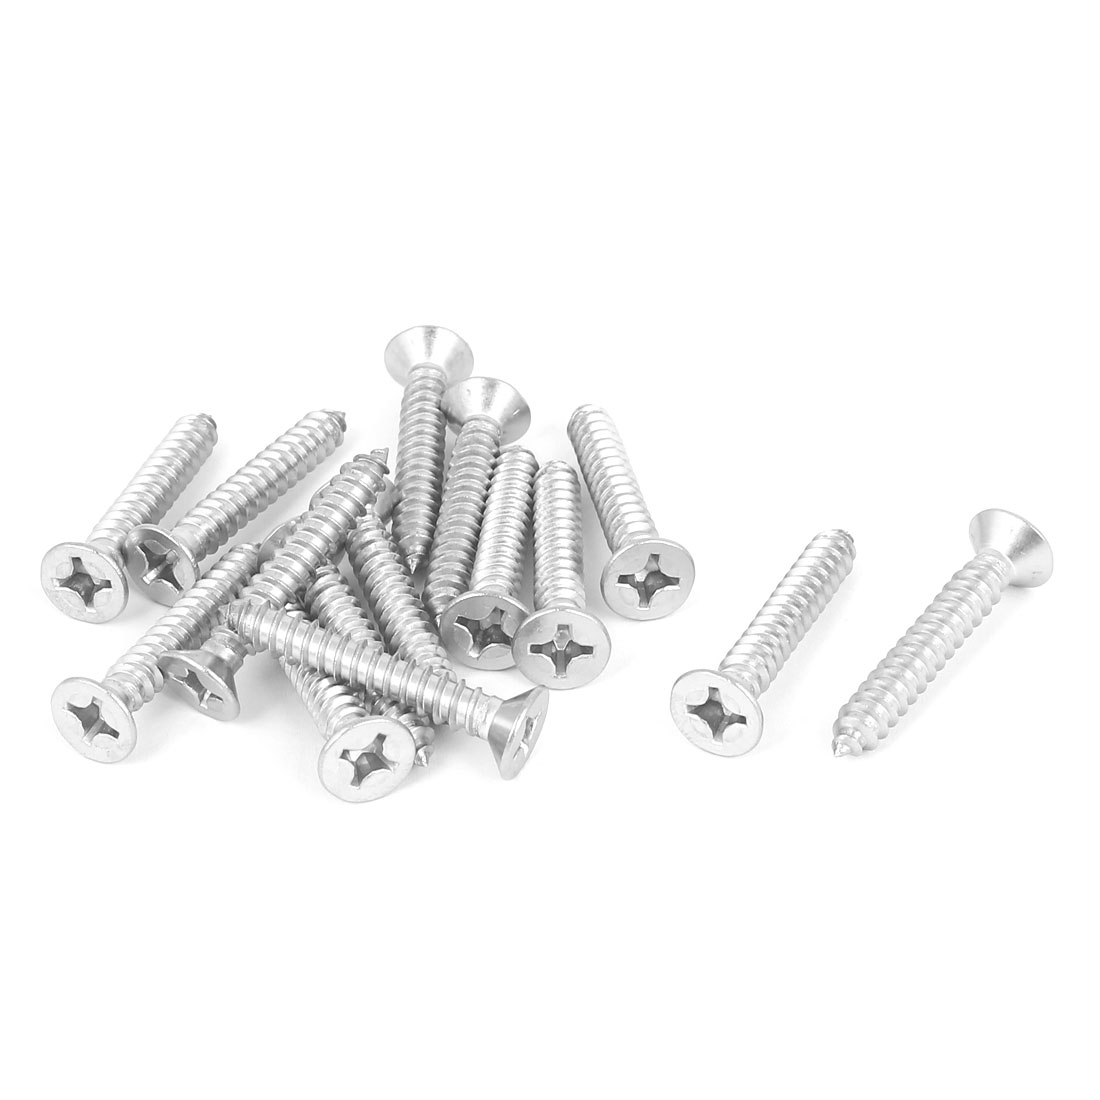 M5.5x35mm 316 Stainless Steel Flat Head Phillips Self Tapping Screws Bolts 15pcs